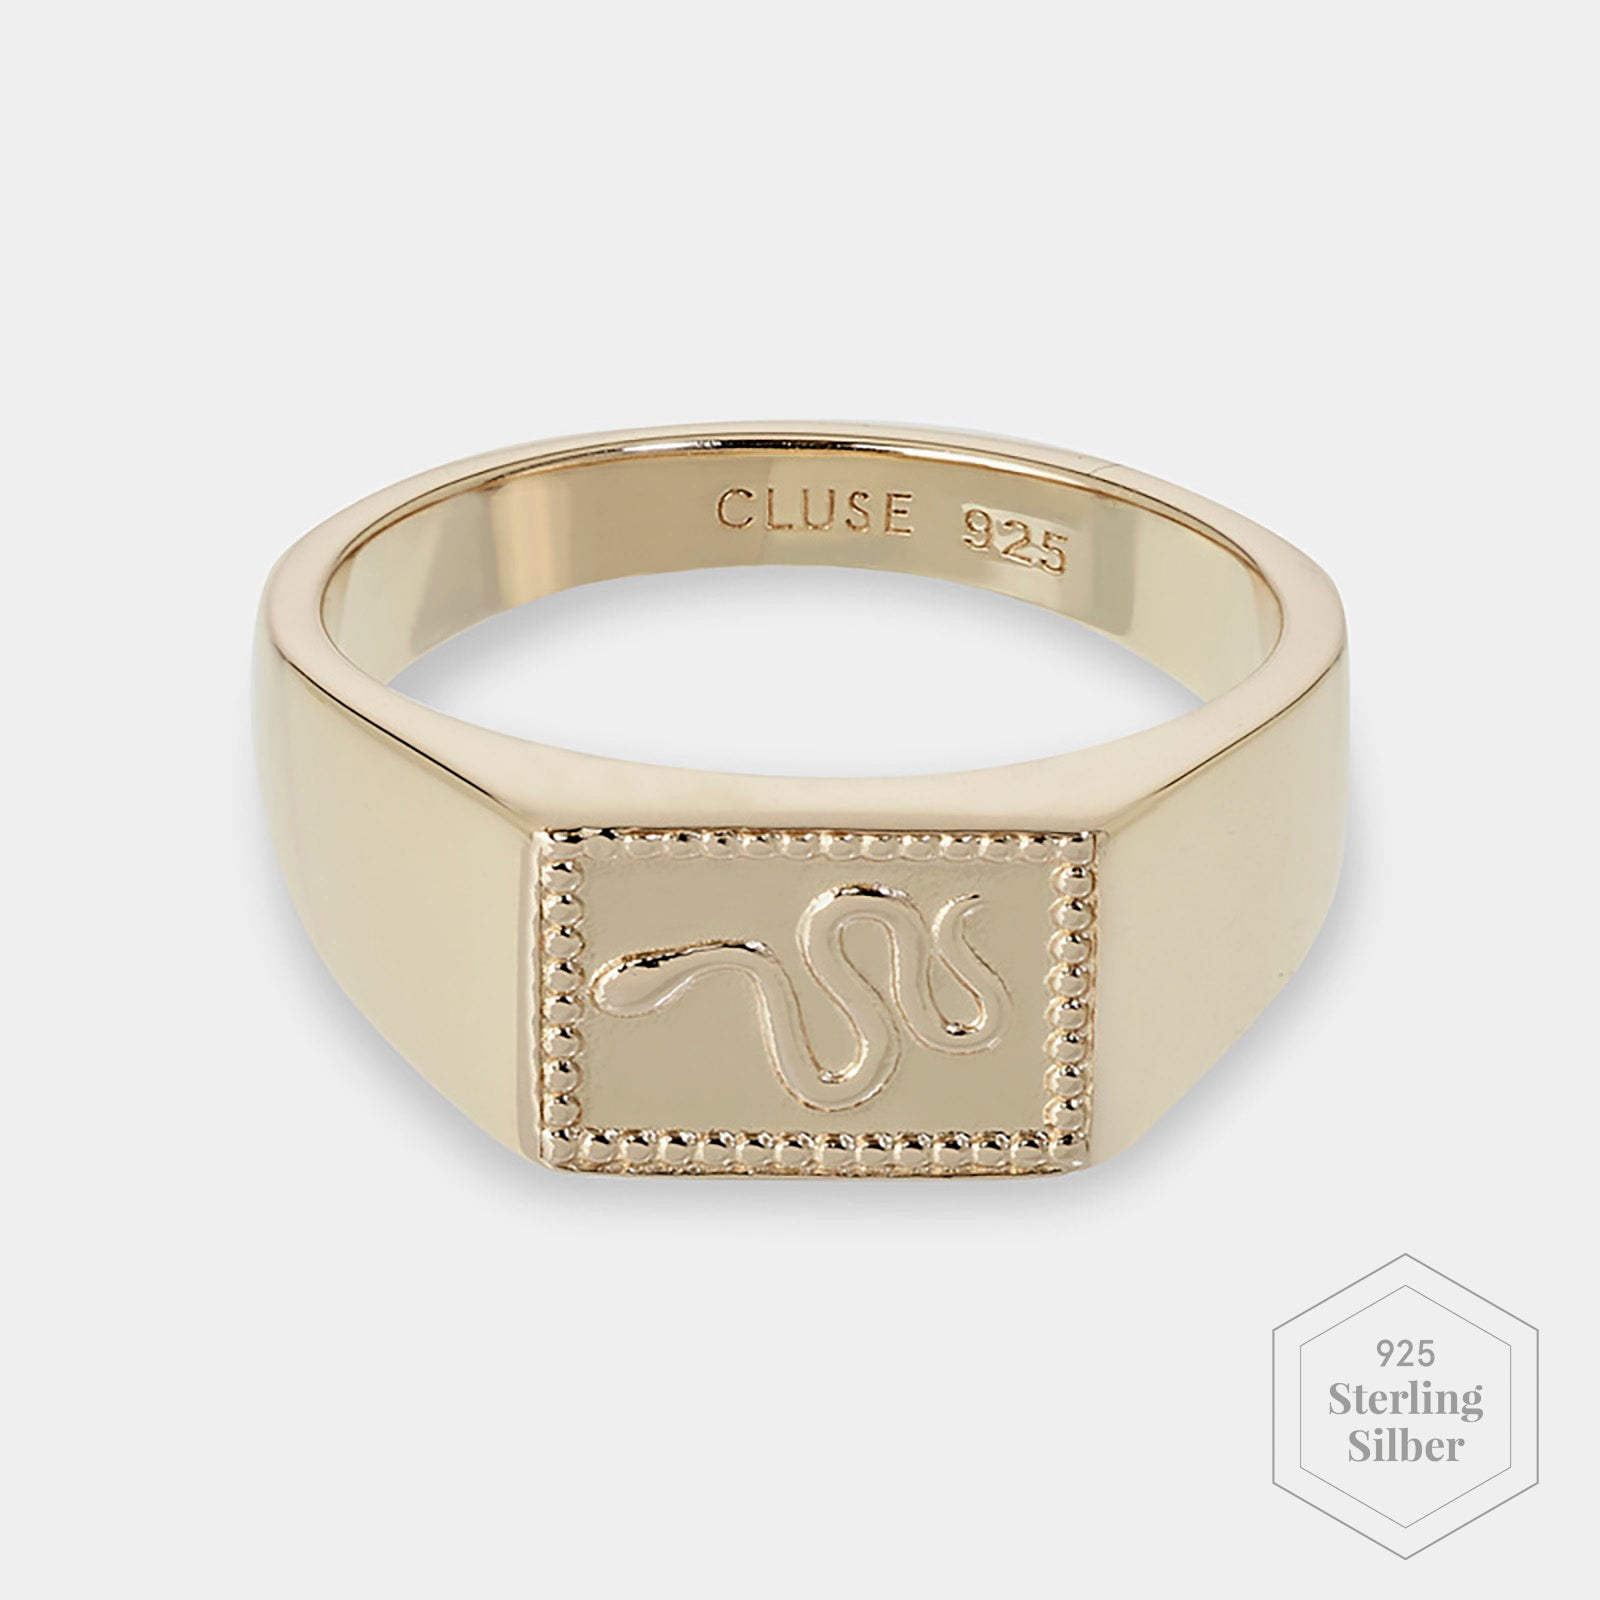 CLUSE Force Tropicale Gold Signet Rectangular Ring 52 - Ringgröße 52